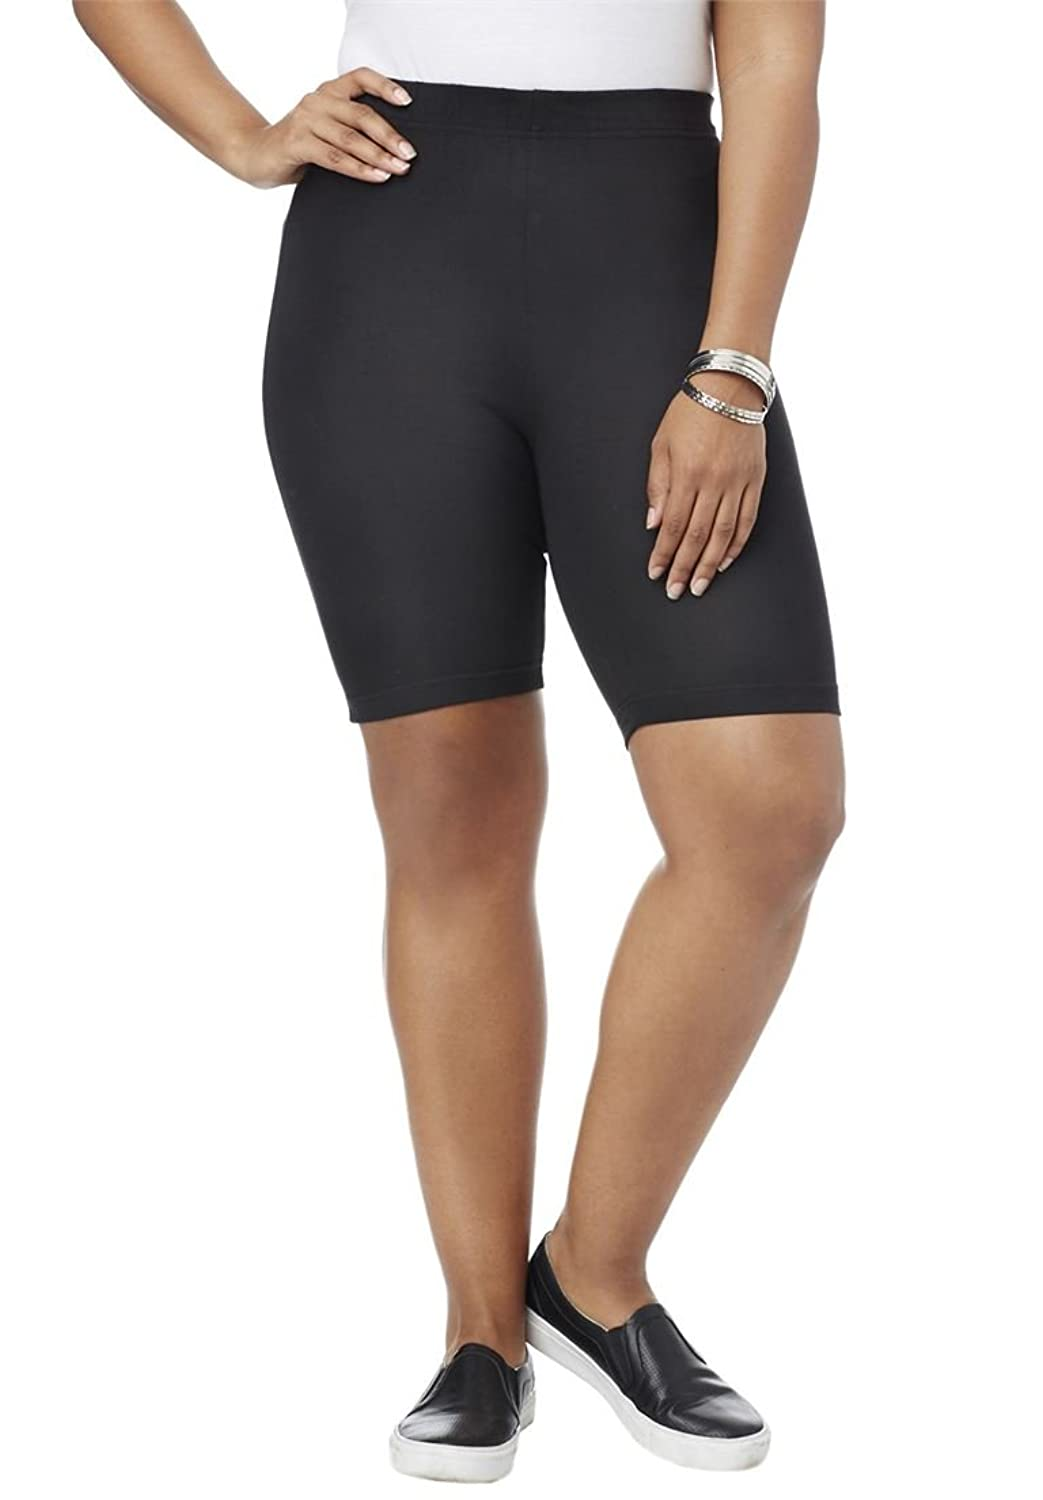 Roamans Women's Plus Size Pull On Bike Shorts